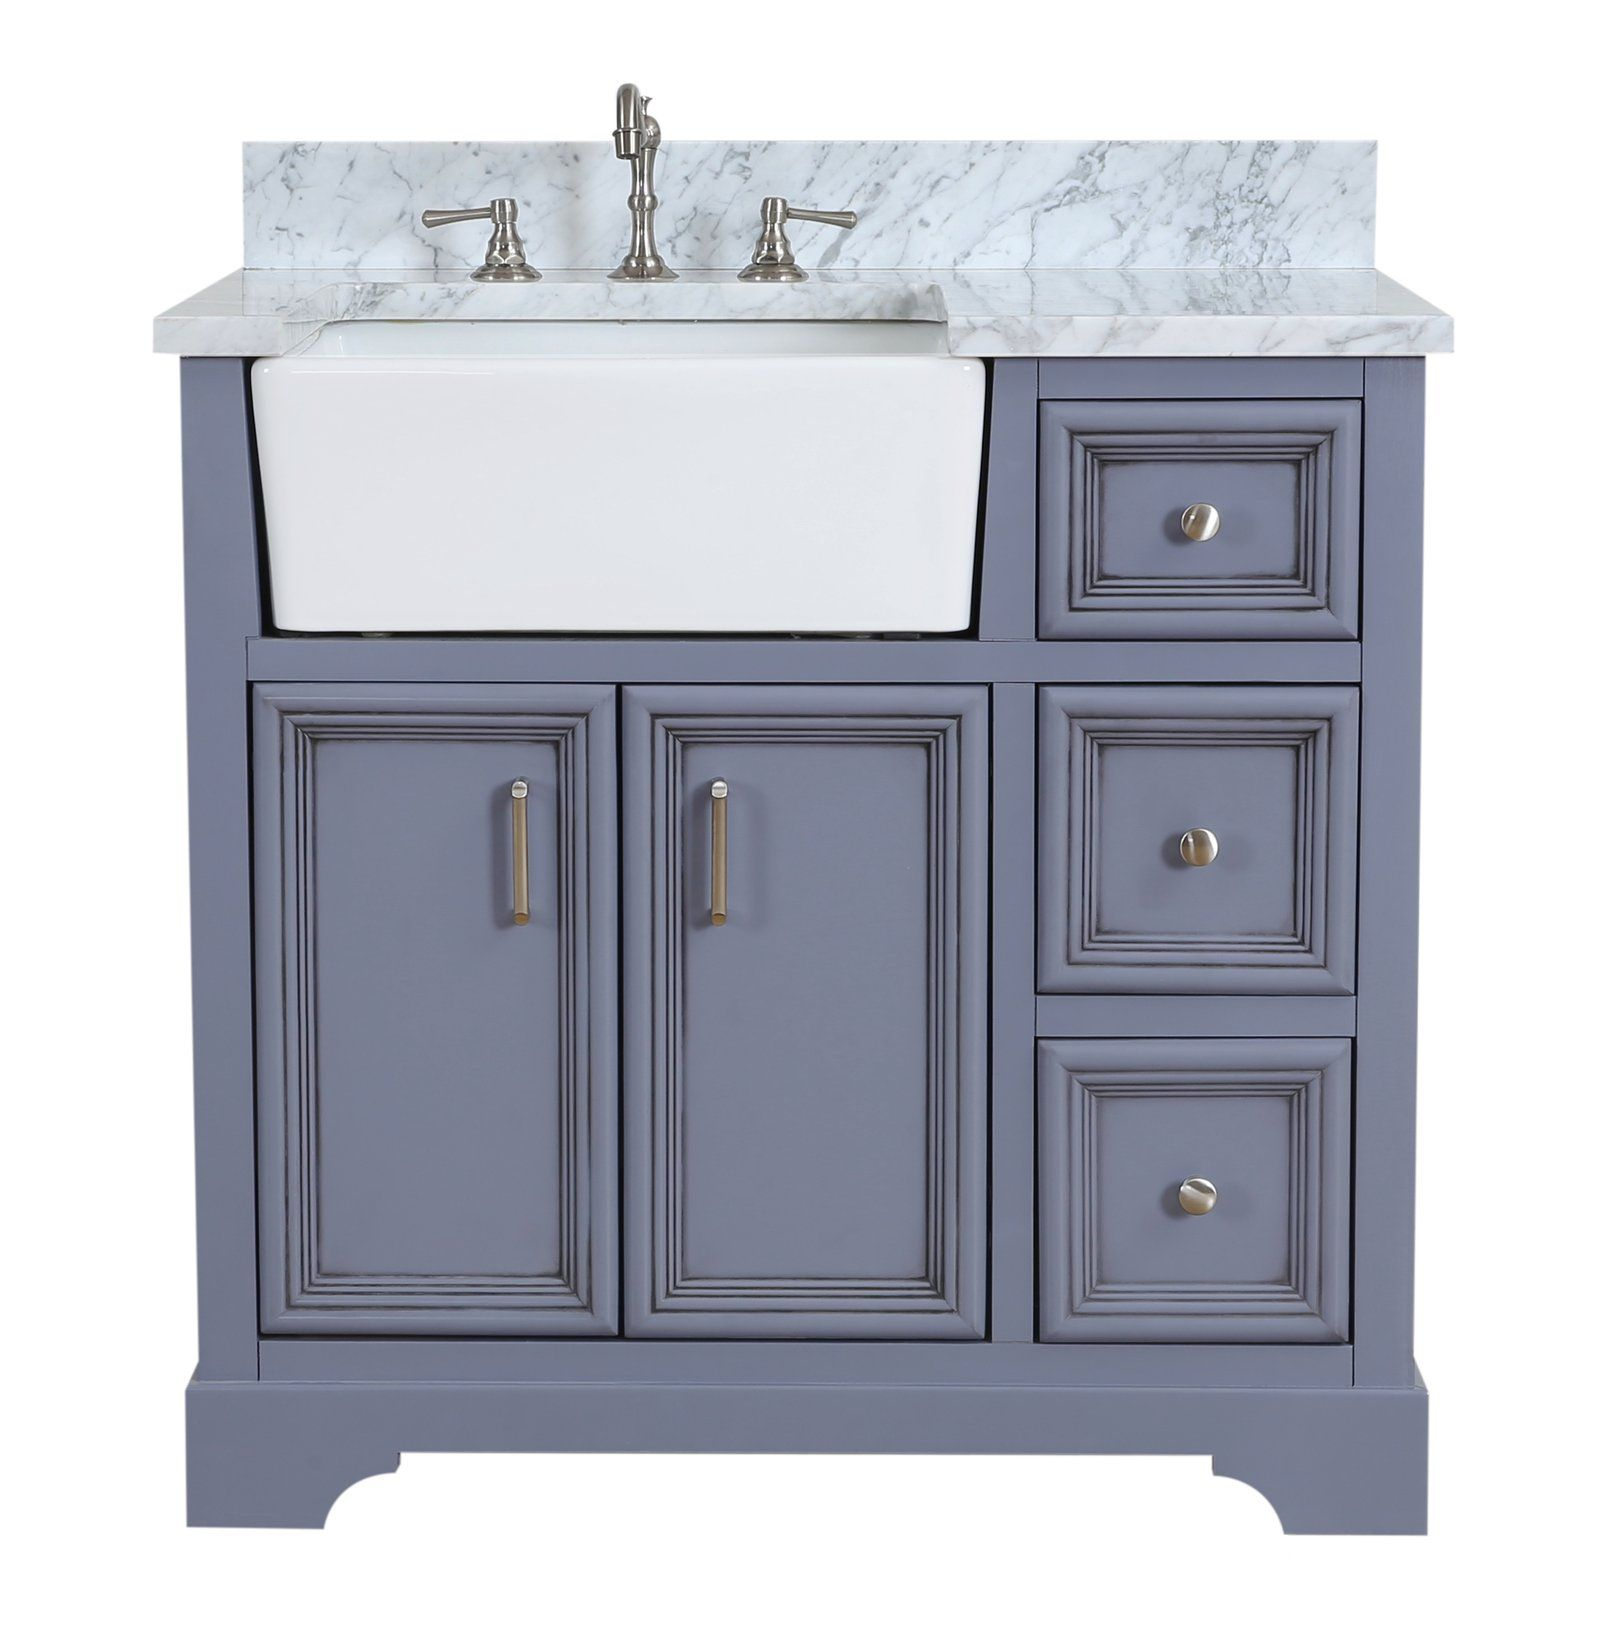 Zelda 36 Inch Farmhouse Vanity With Carrara Marble Top 2020 Ic Mekan House Renkler